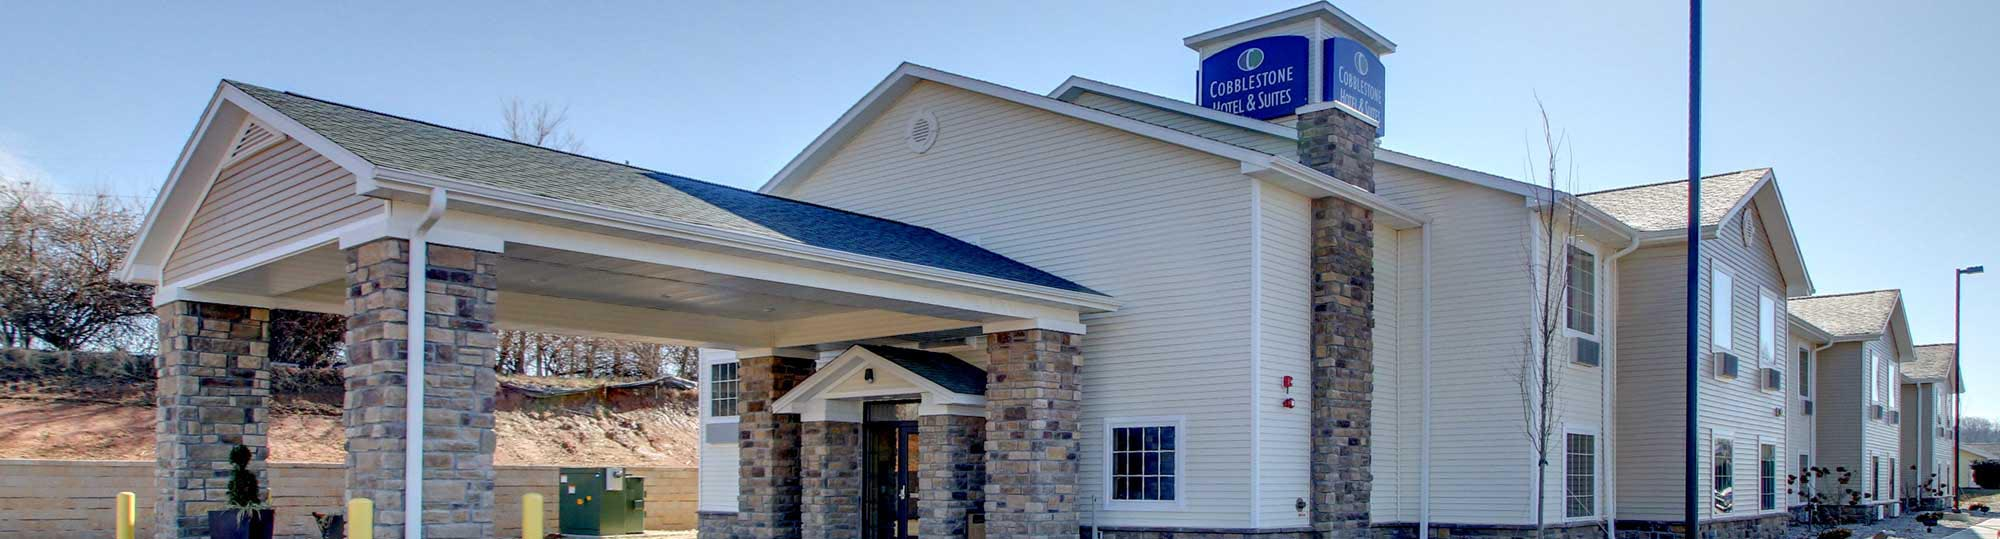 Cobblestone Hotel & Suites Killdeer